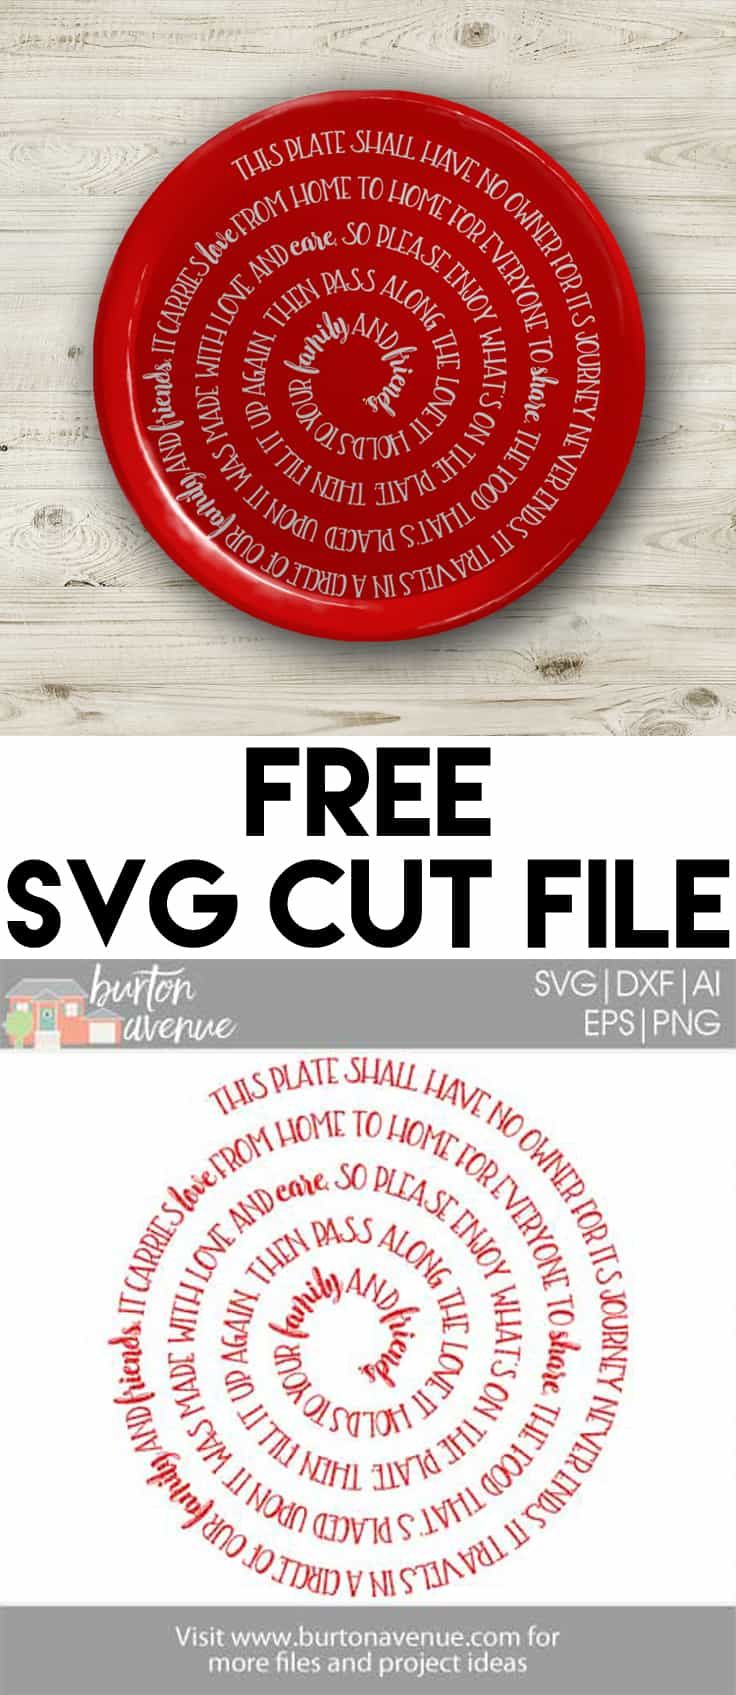 Meat cutting: options for design and filing (photo) 5